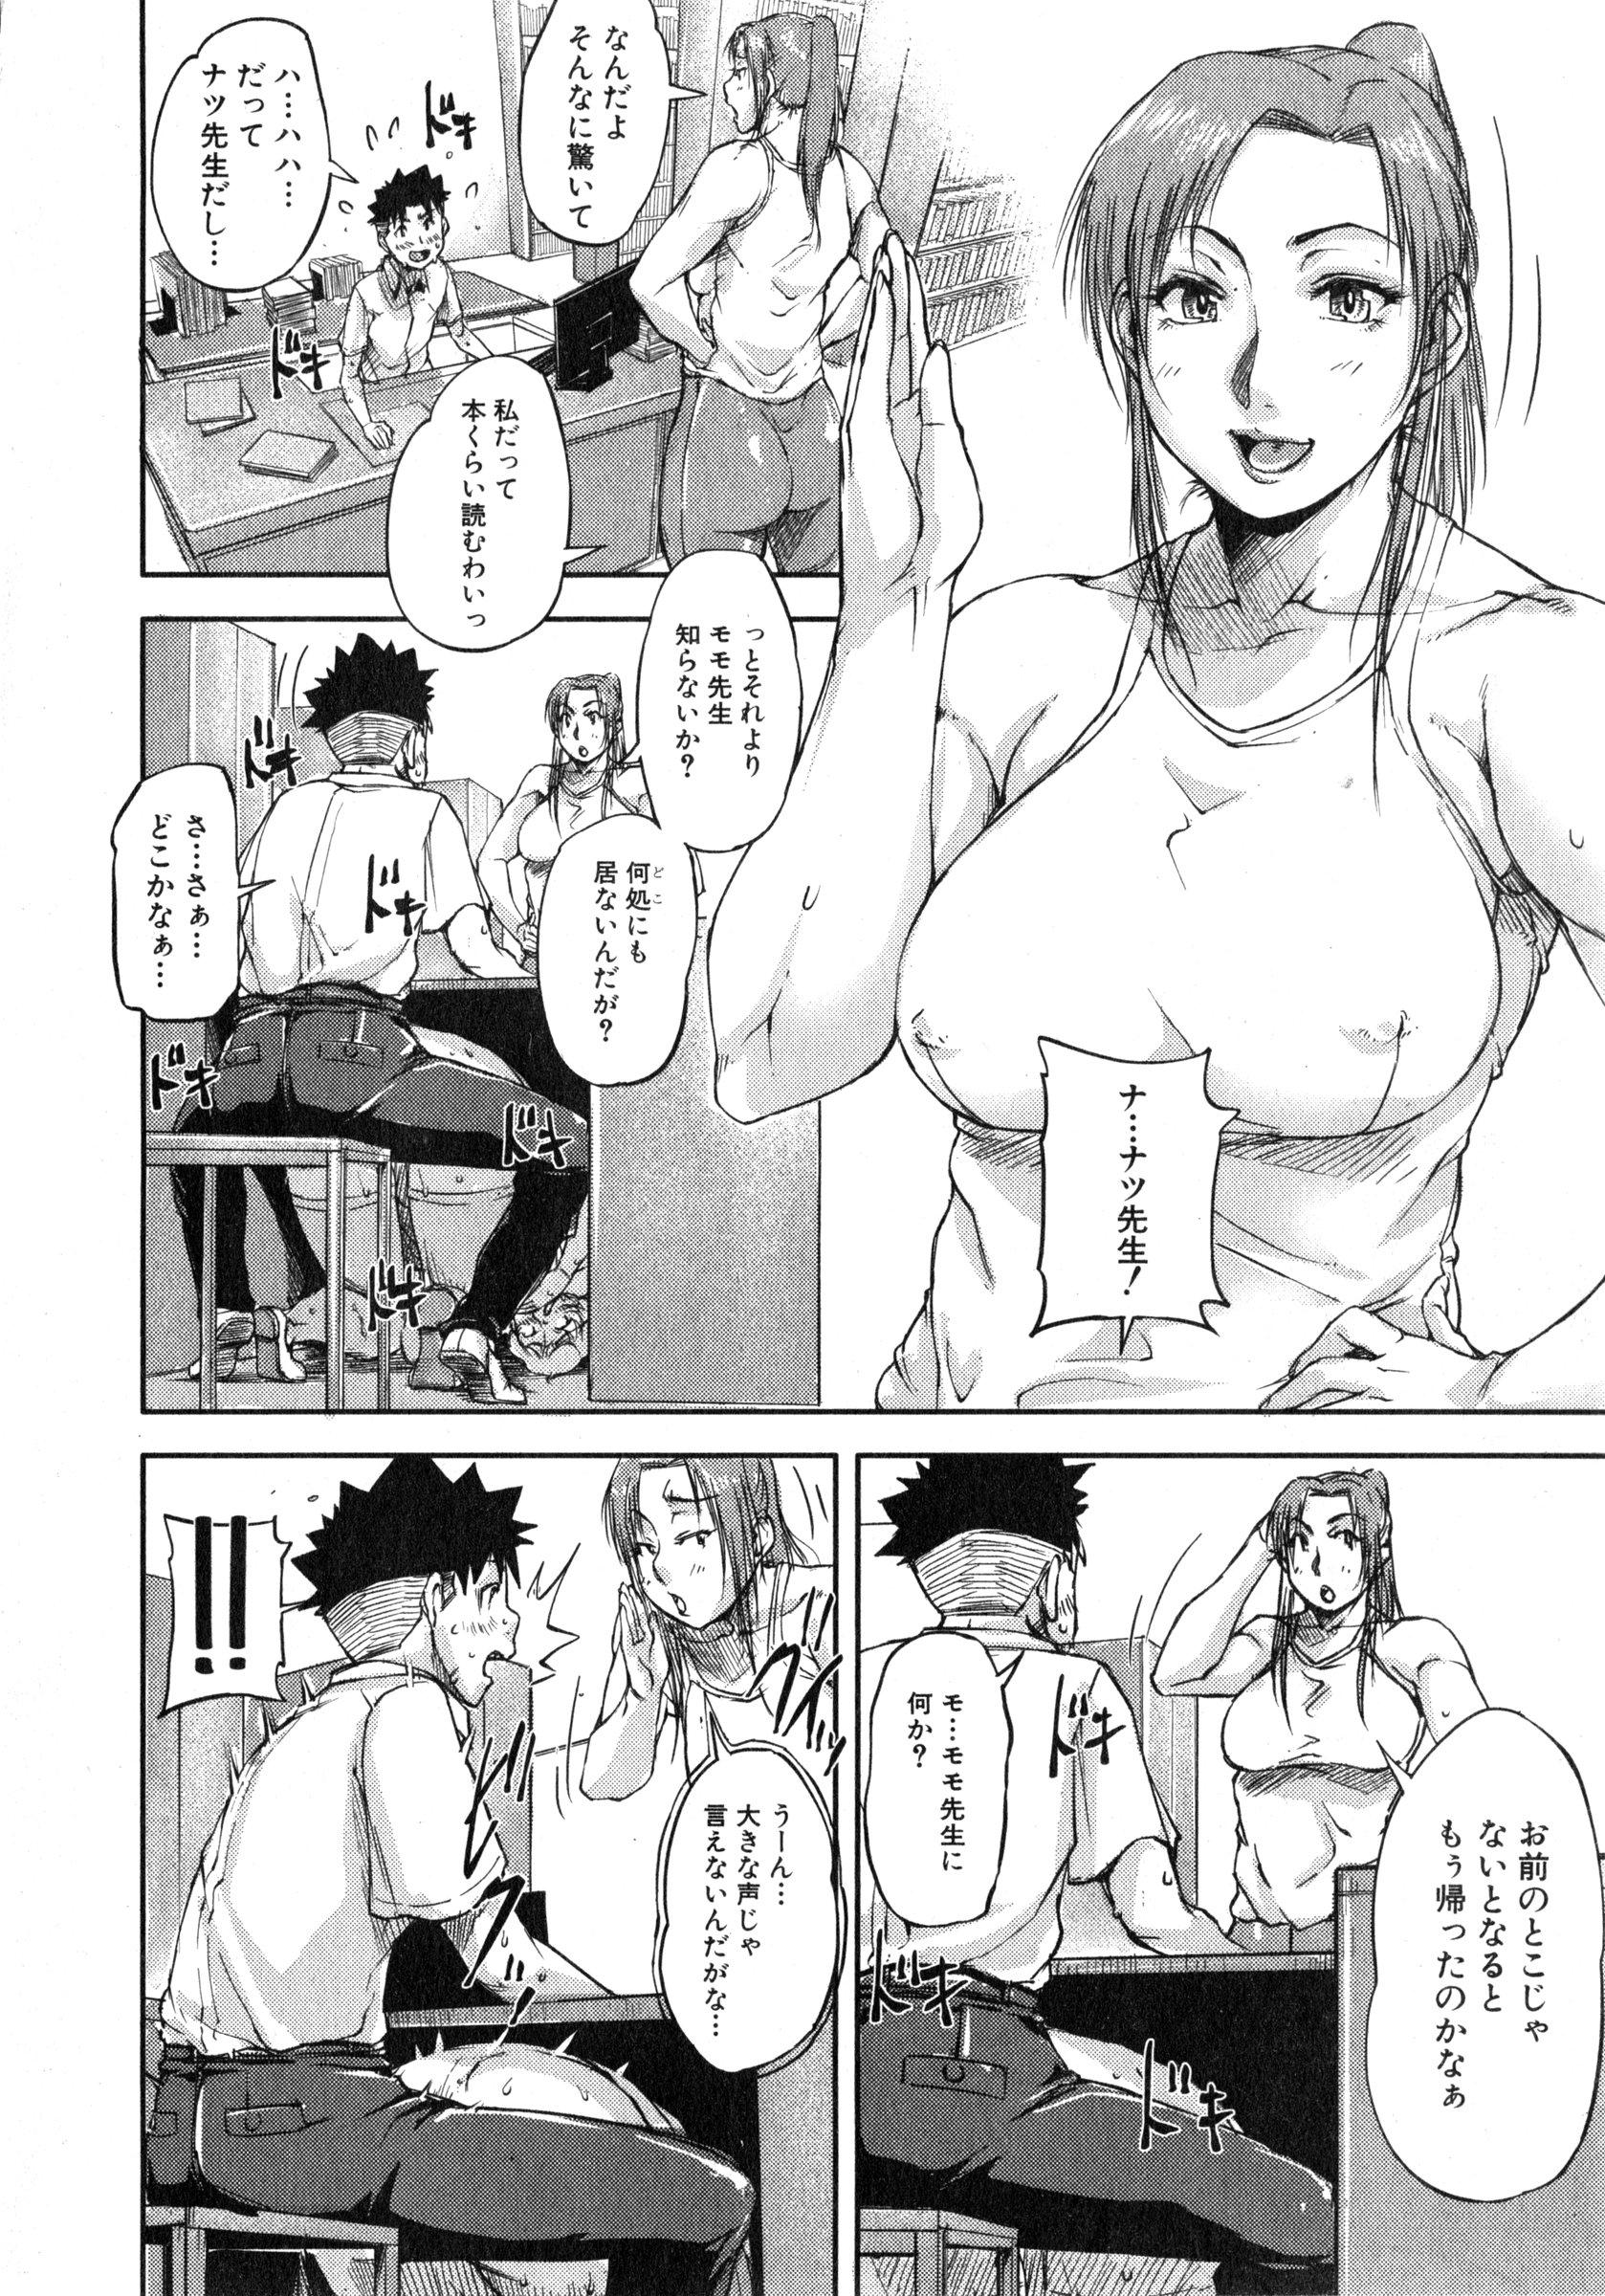 We are the Chijo Kyoushi Ch. 1-2 49